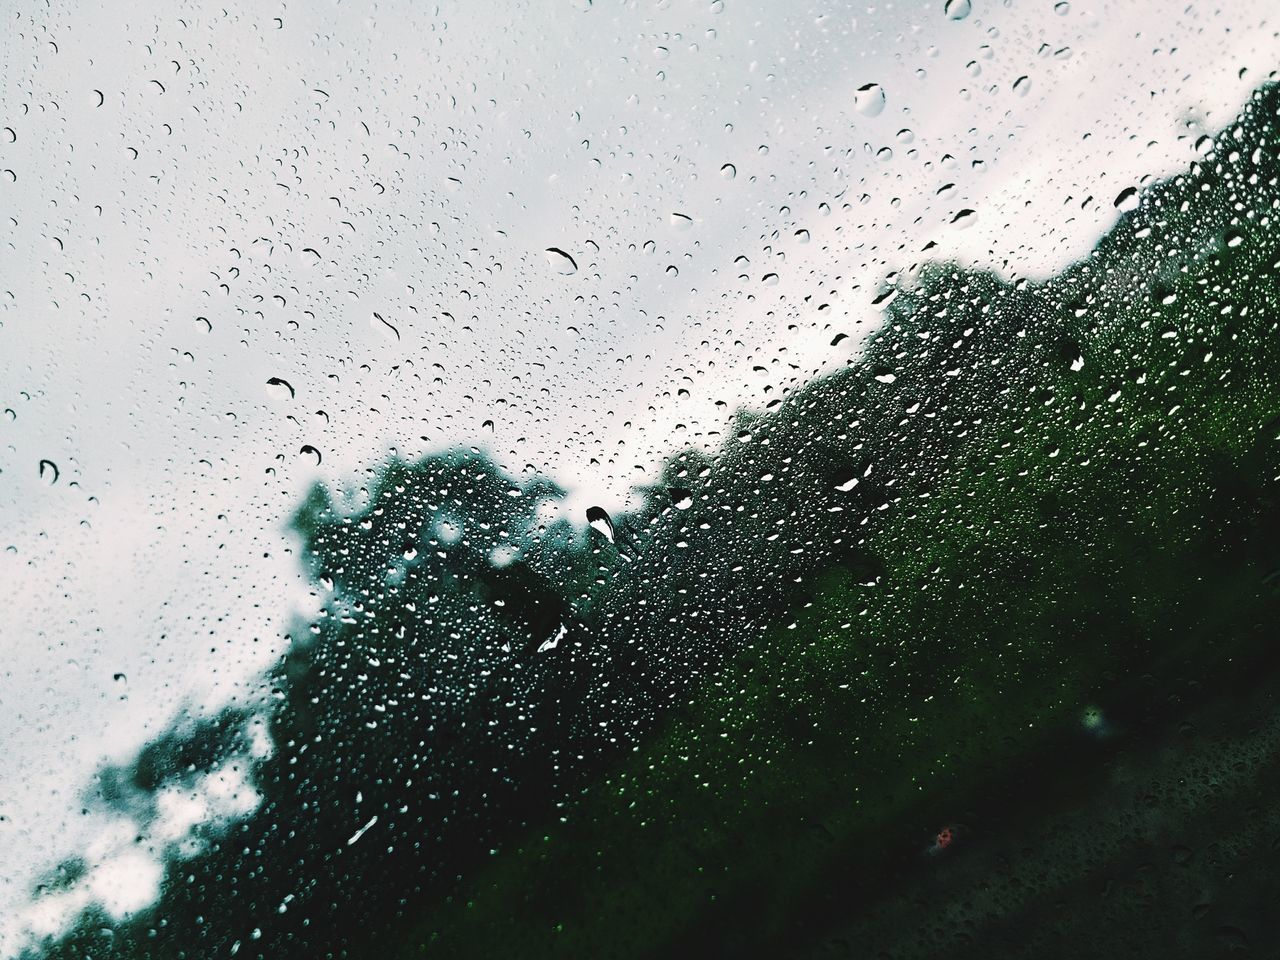 drop, glass - material, window, wet, water, glass, rainy season, weather, raindrop, indoors, no people, sky, looking through window, day, nature, animal themes, close-up, mammal